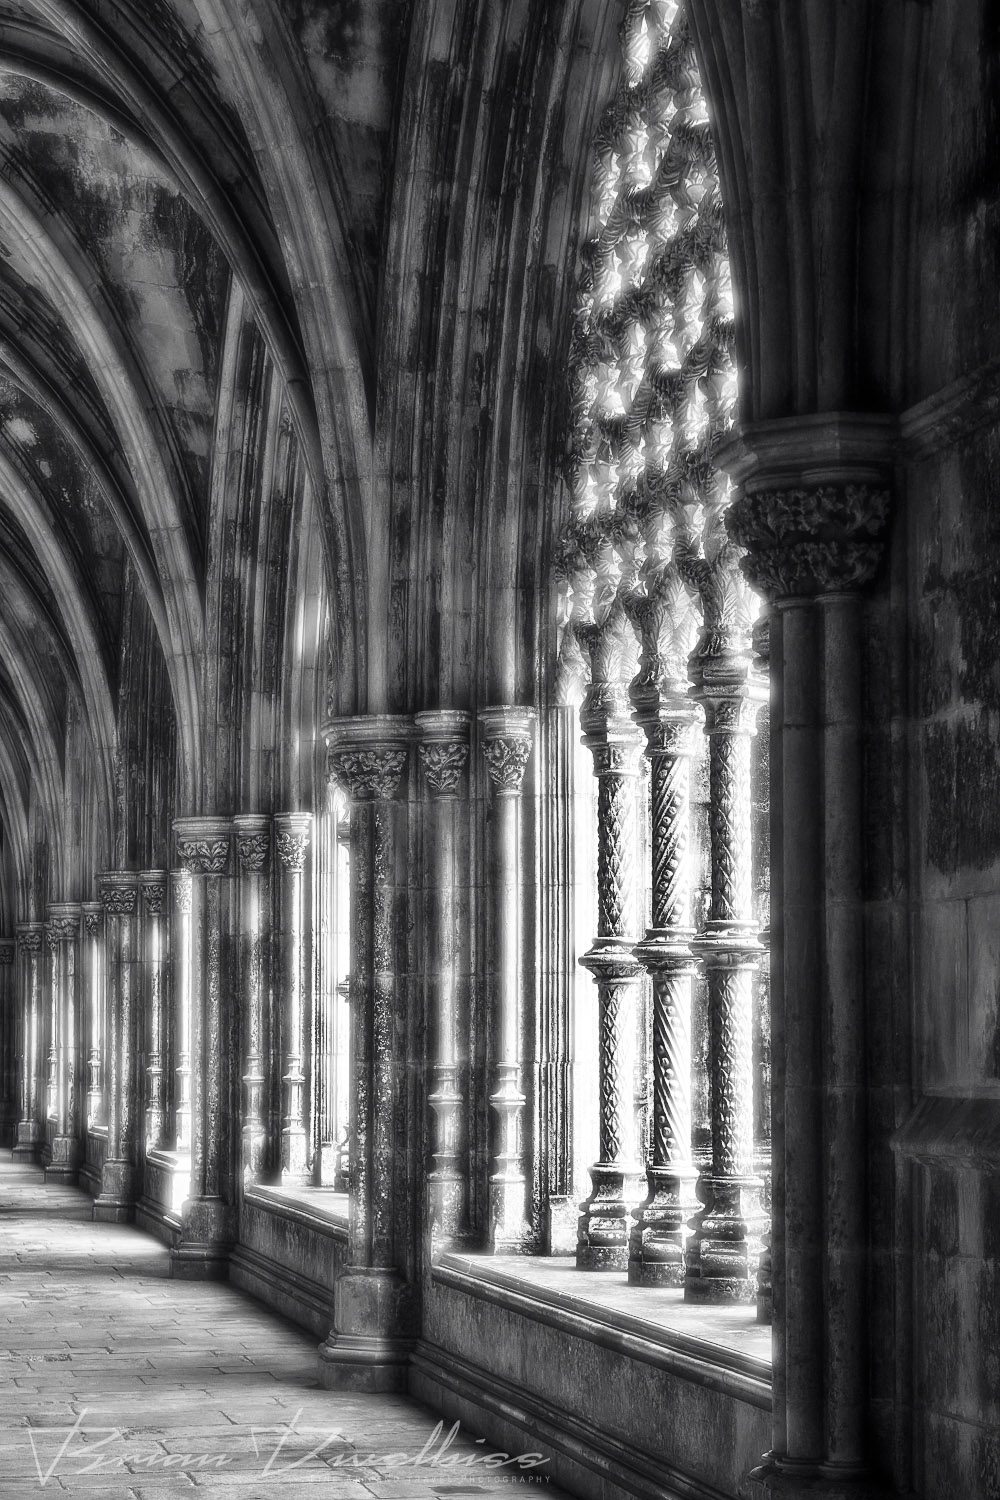 Light coming in through intricate stone arches along pathway in the Royal Cloister of the Monastery of Saint Mary of the Victory in Batalha, Portugal in black a